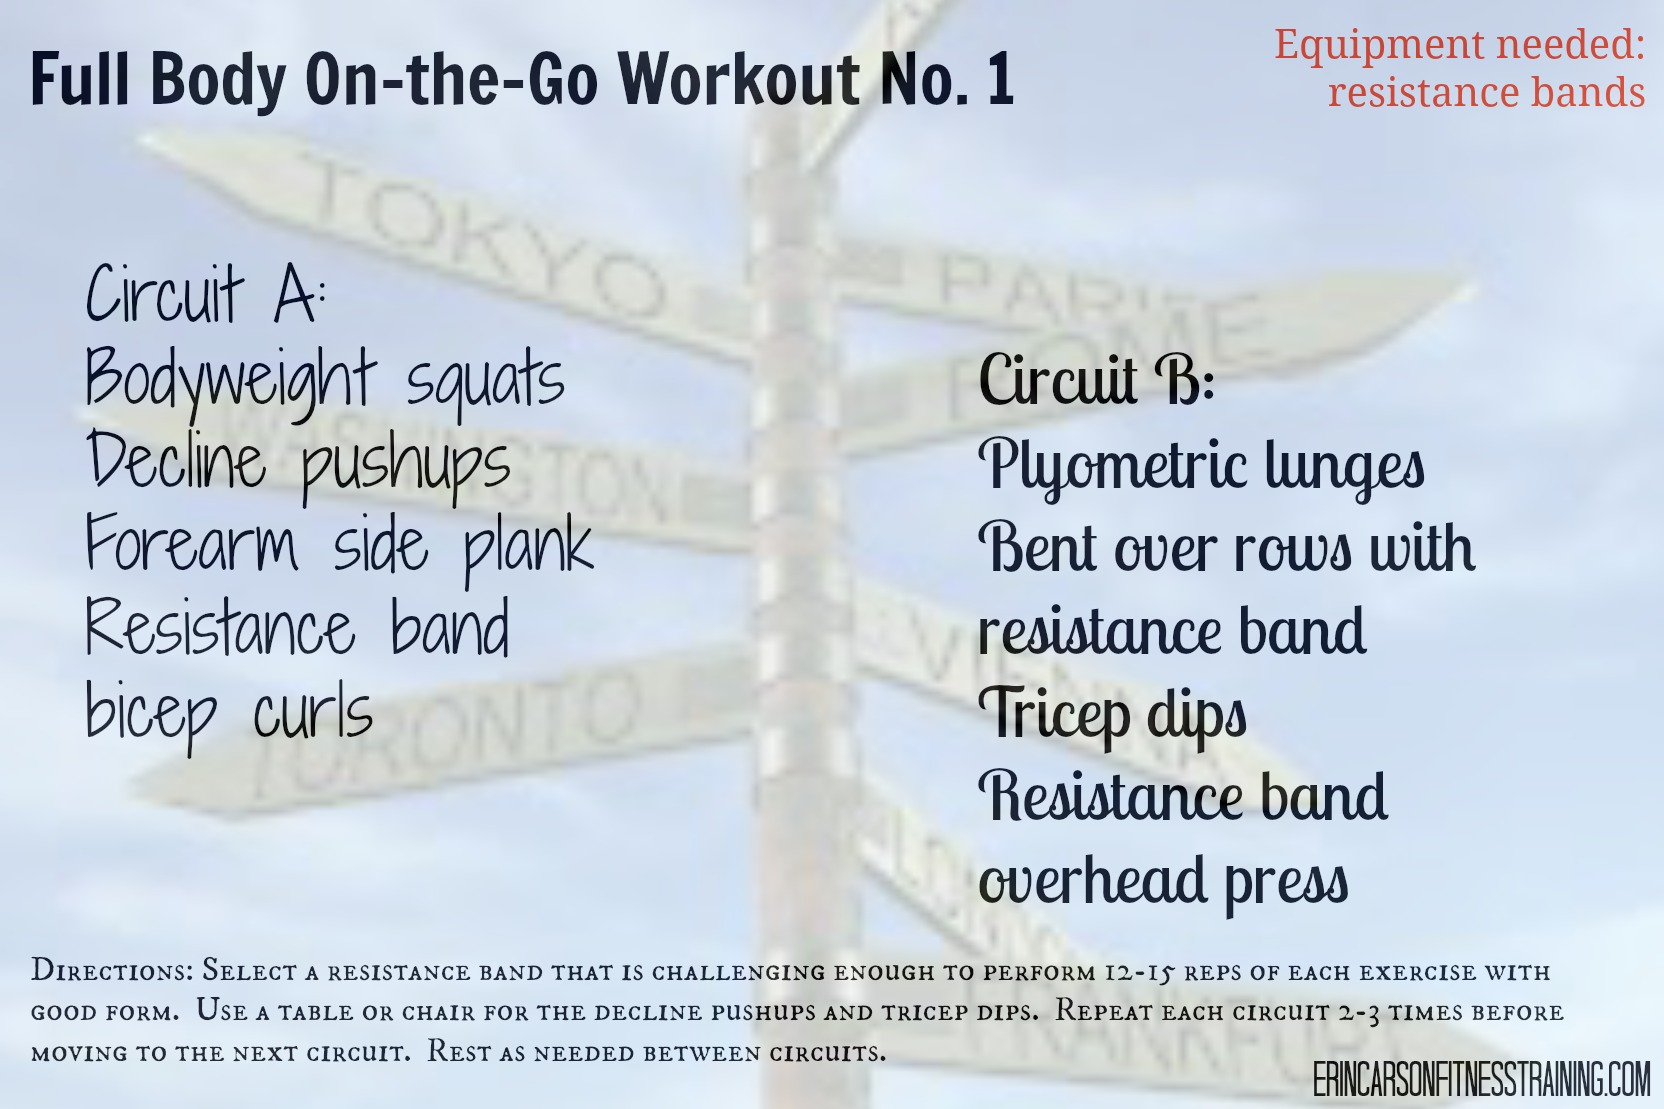 Blog Erin Mays Fitness Training Great Form Workouts And Tagged Circuit Workout Full Body On The Go No 1